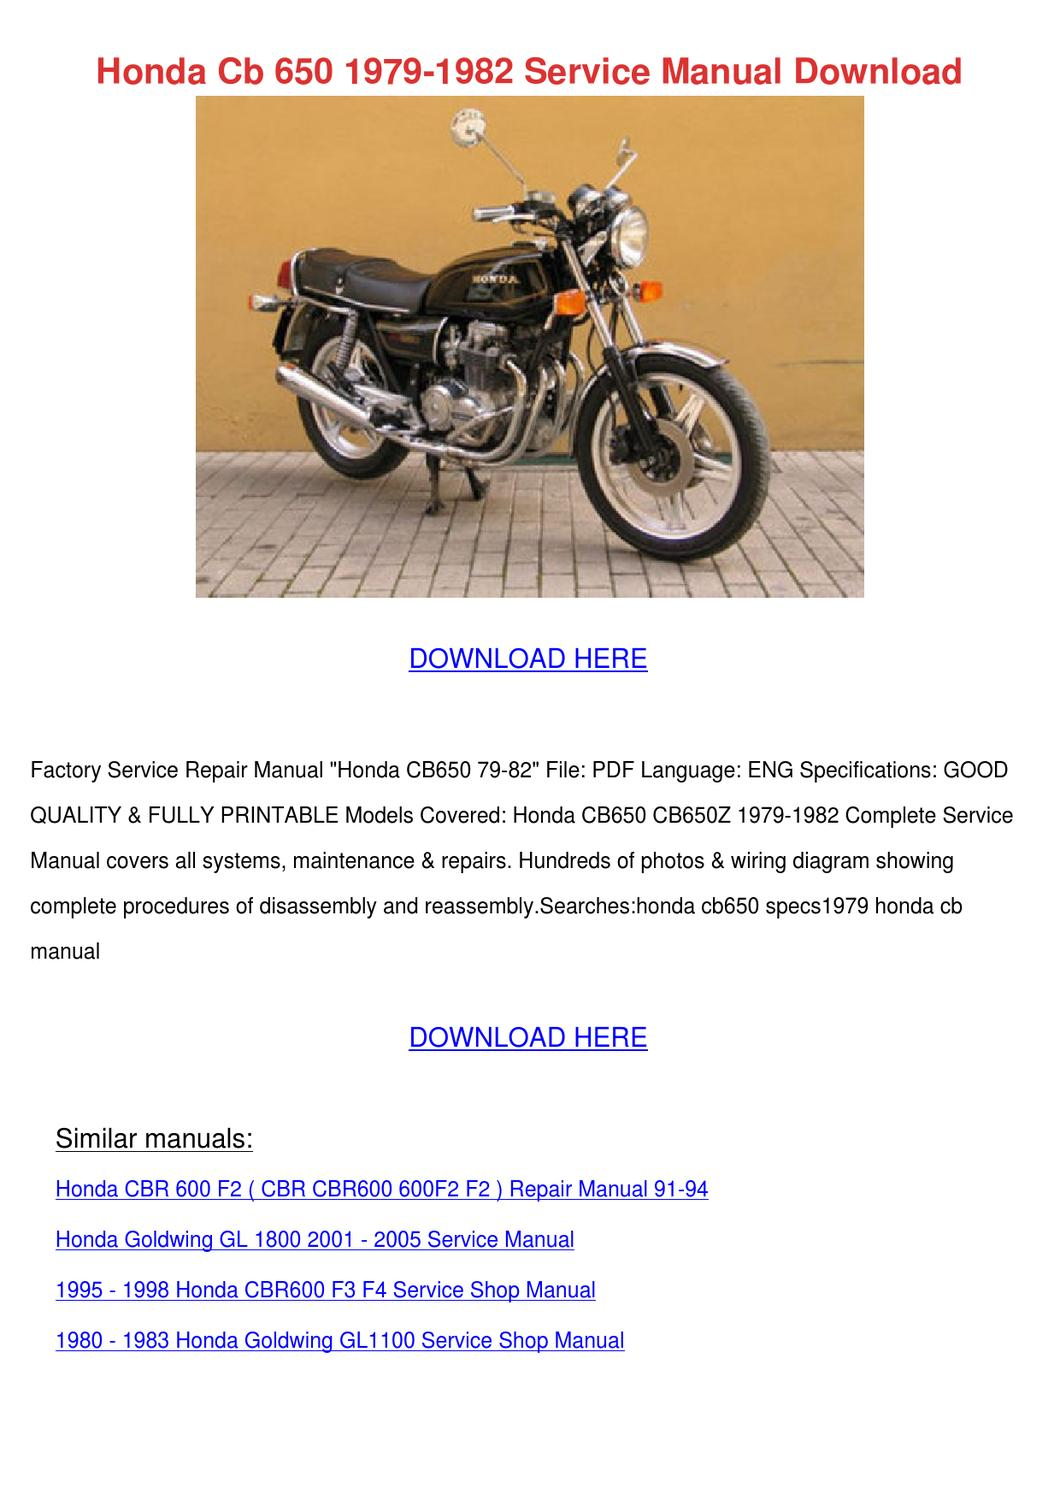 each them format cyclepedia 1983- cb650sc nighthawk printed features  detailed black white photographs wiring diagrams, introduction chapter  engine,